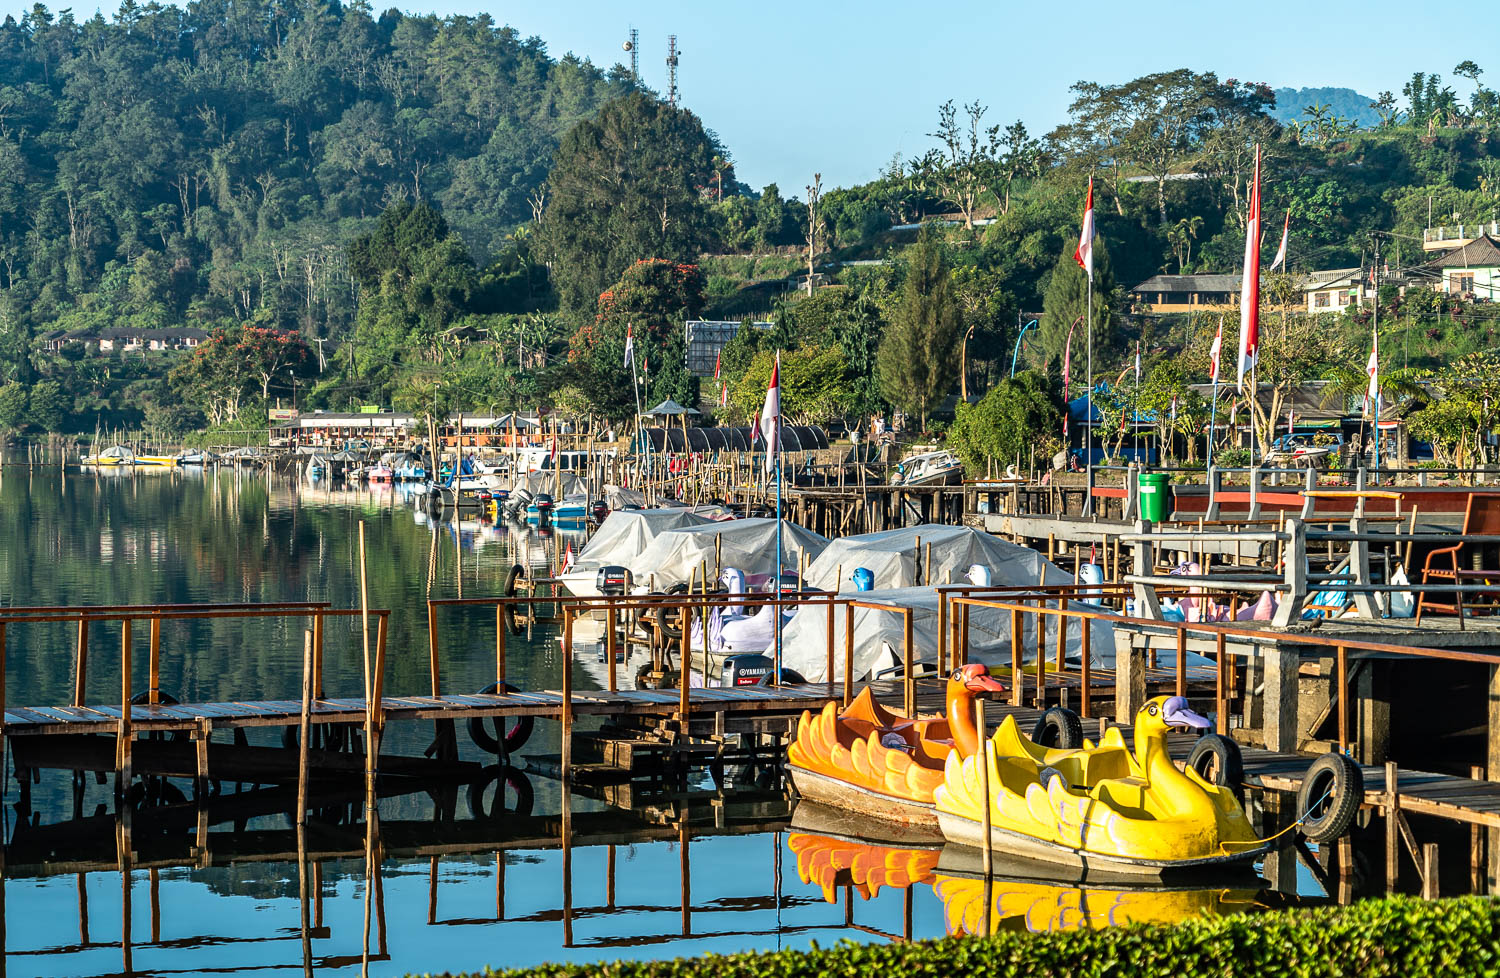 Marina at Ulun Danu Bratan, with a row of boats where visitors can get an up close view of the temples from the water.